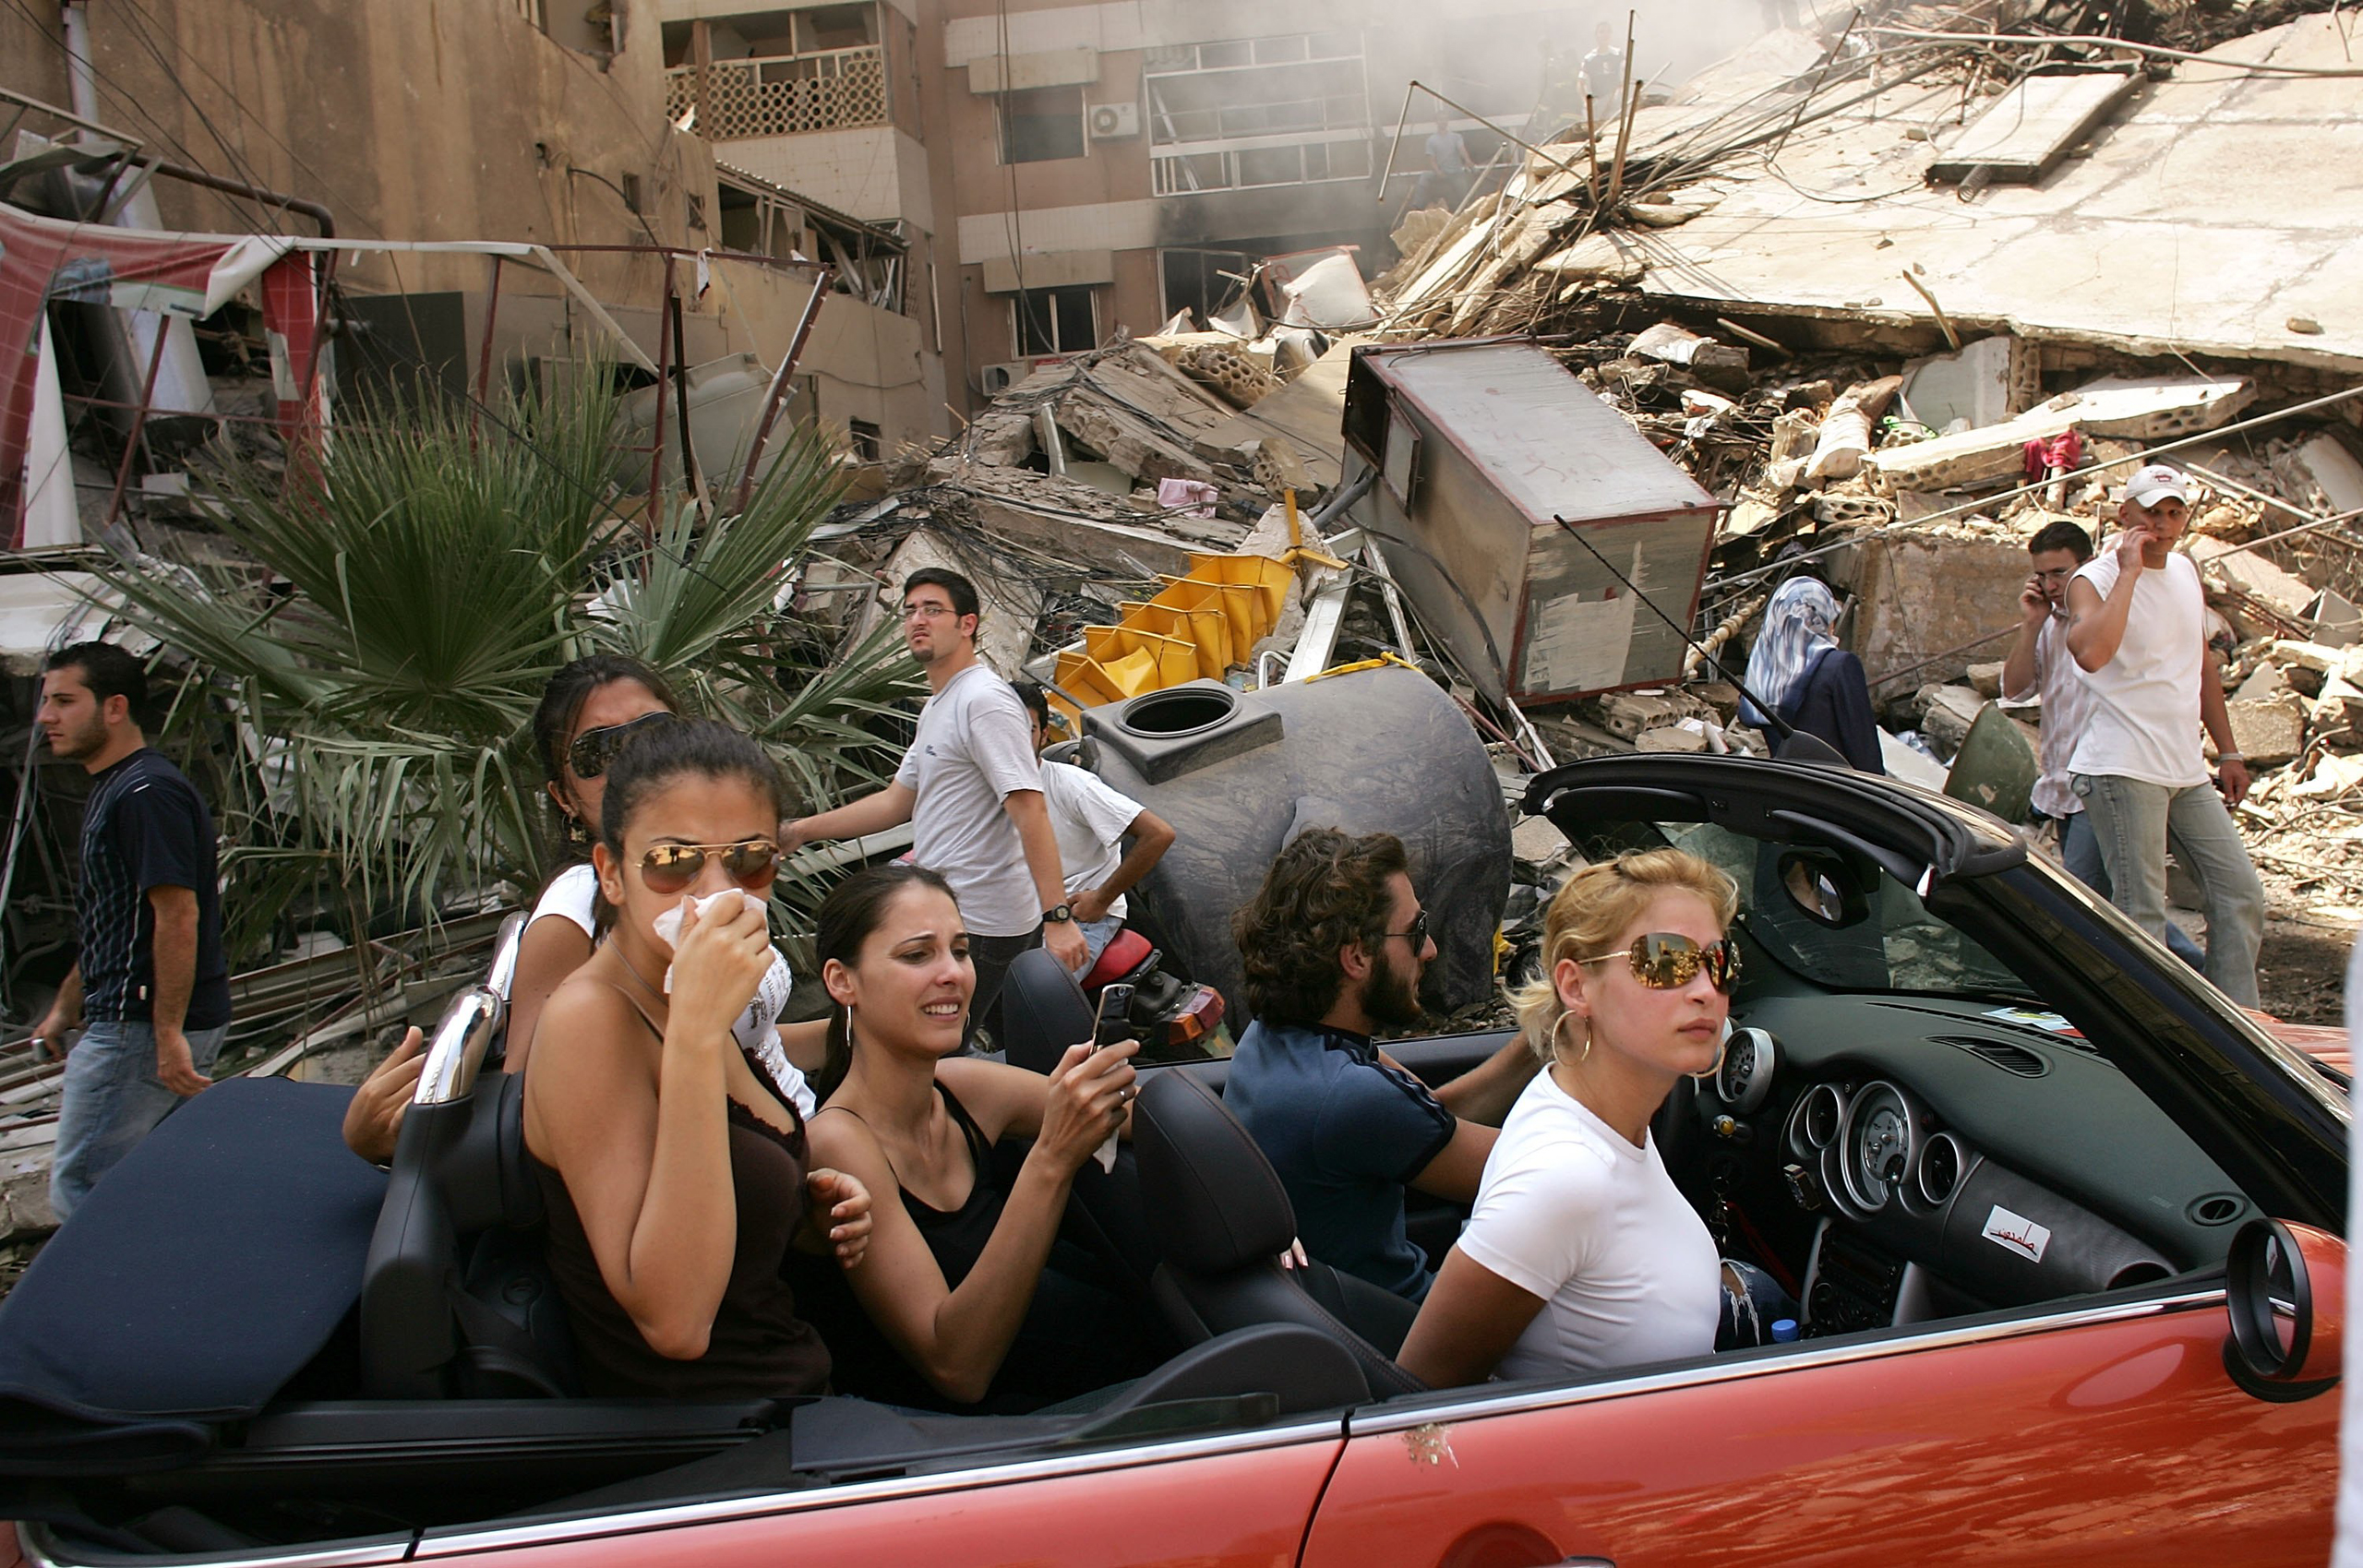 Like all images of conflict, I have mixed feelings about this picture I took in south Beirut in 2006. I see it every morning framed on a stark white wall in my Brooklyn apartment. The opaque nature of reality in the Middle East is captured in the image. The beautiful subjects in the red Mini Cooper driving through a devastated neighborhood took offense at how they were depicted. They falsely claimed to reporters that they were actually refugees. The way I was subsequently treated by numerous members of the media made me want to leave the profession and go someplace far away. For me, this picture also stirs feelings of hopelessness for the region. War has developed a vicious tenacity in the Middle East. It seems to only get bloodier and darker with each passing year. News pictures are a hostage to time and place, liberating them from the fallout of what happens in the days and months after the click of the shutter.